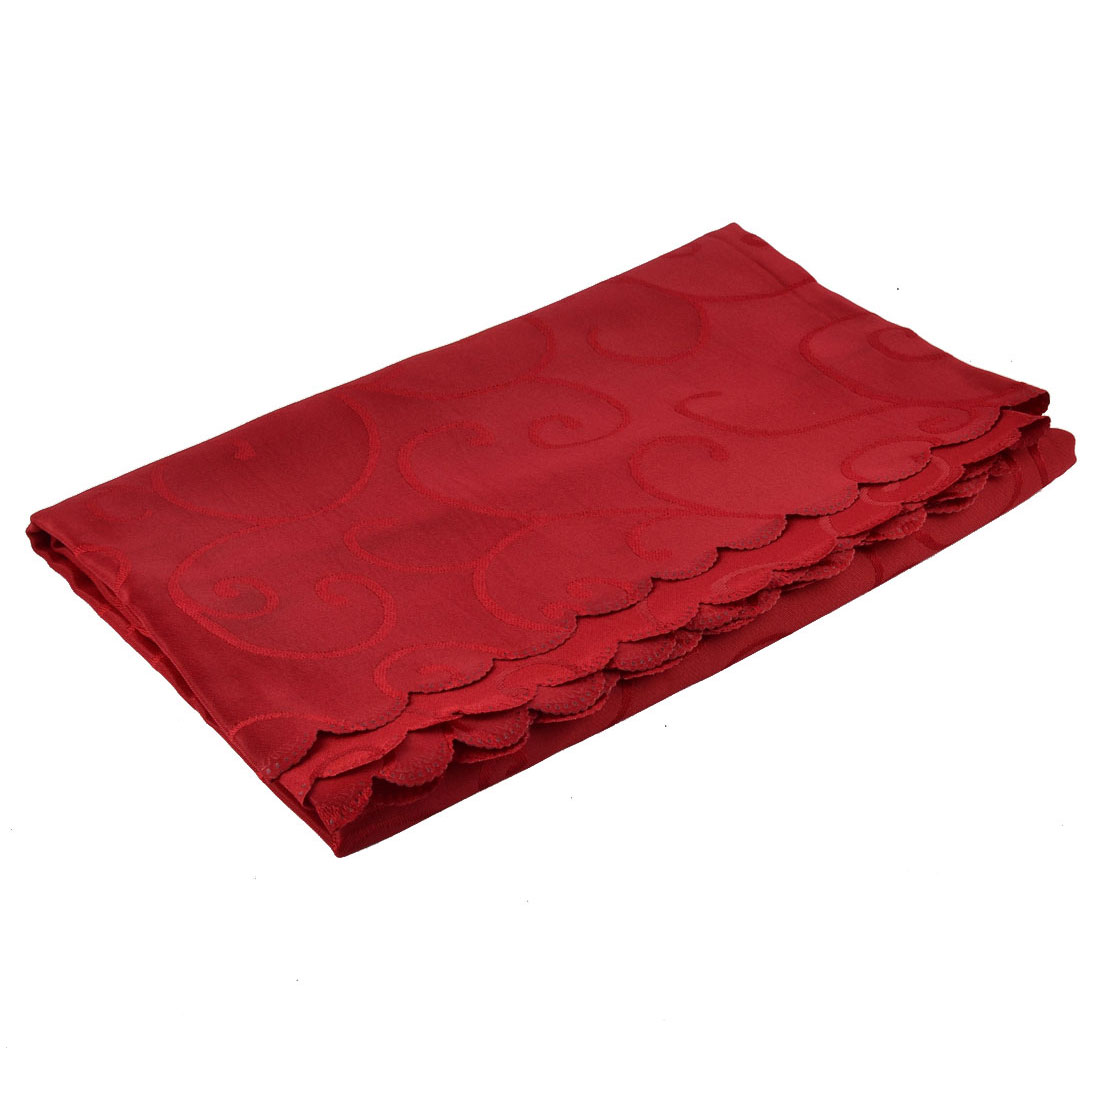 Home Hotel Restaurant Polyester Rectangular Flower Pattern Tablecloth Table Cloth Cover Red 70 x 55 Inch